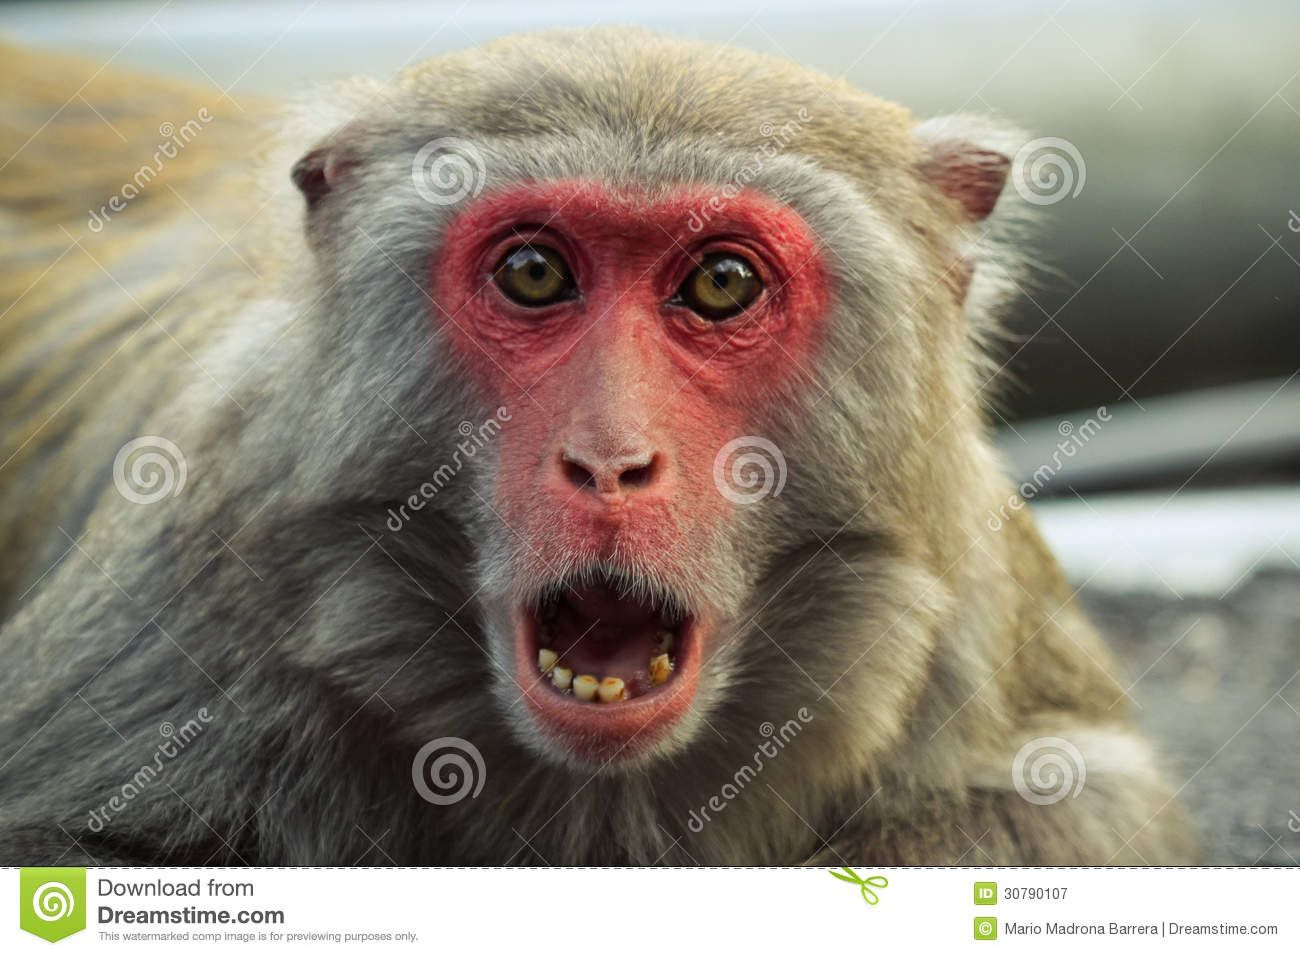 Shocked Animals images, Monkey, Stock photography free